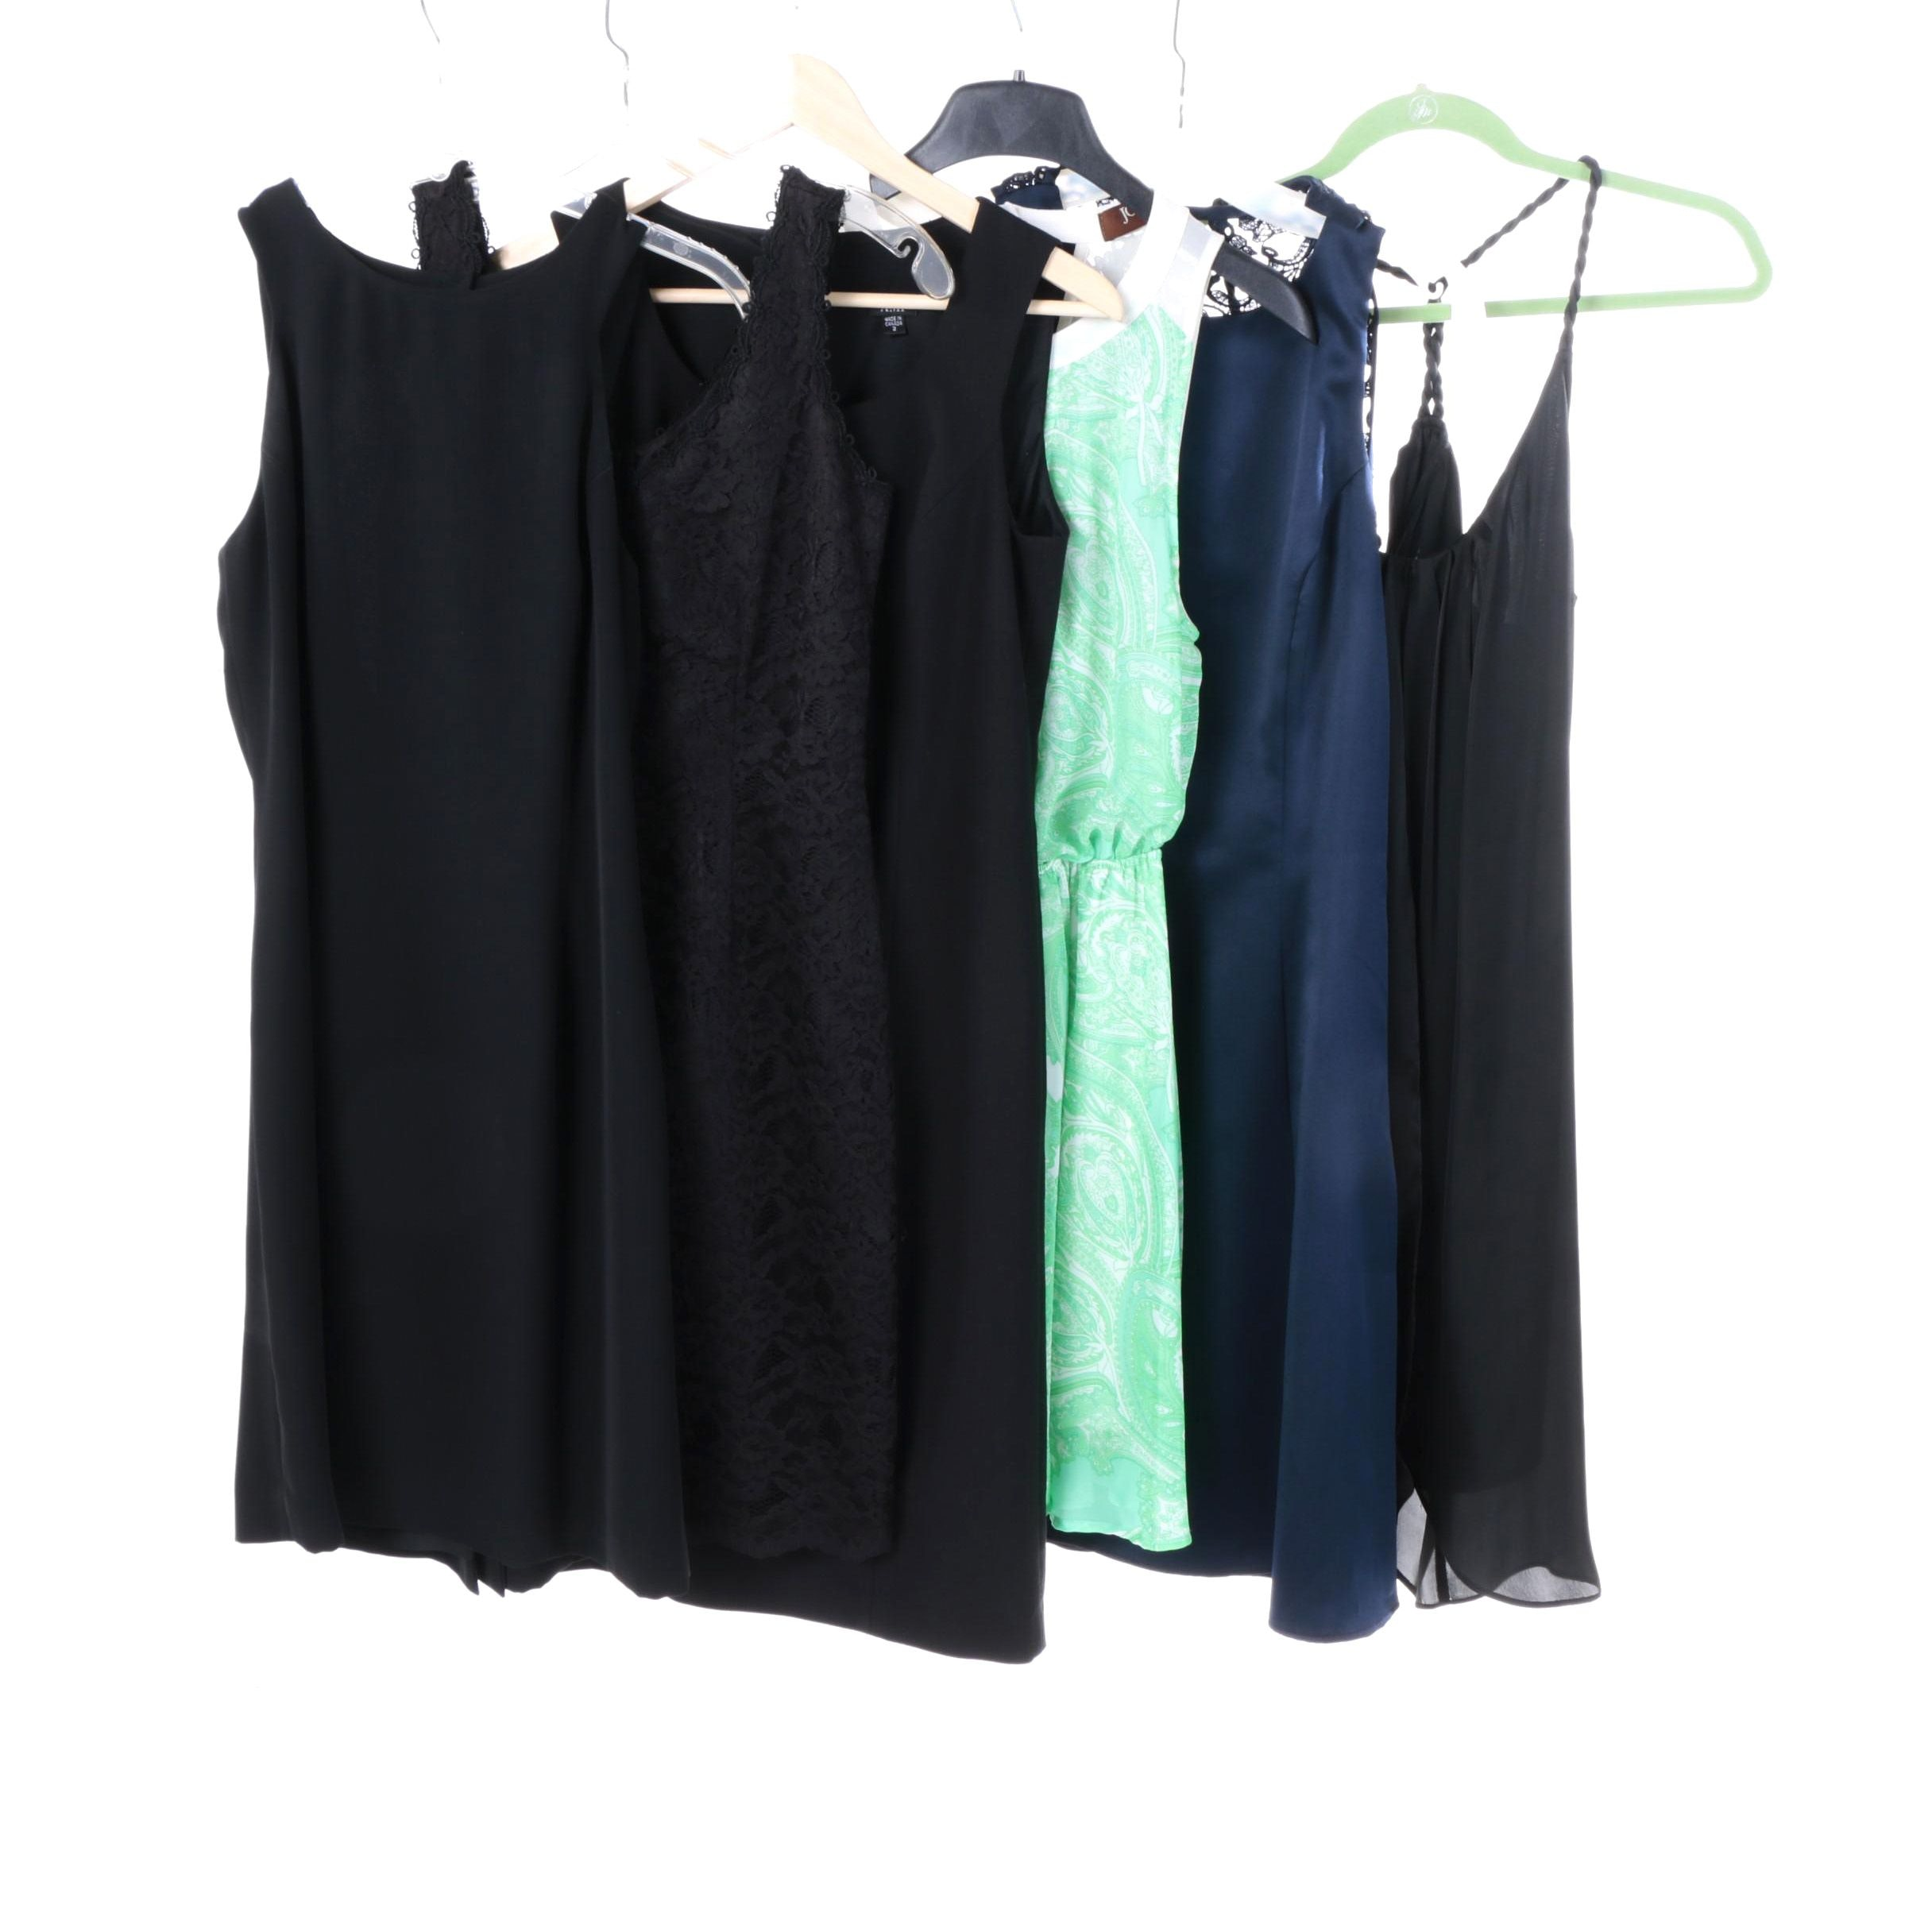 Women's Cocktail Dresses Including Adrianna Papell and XMI